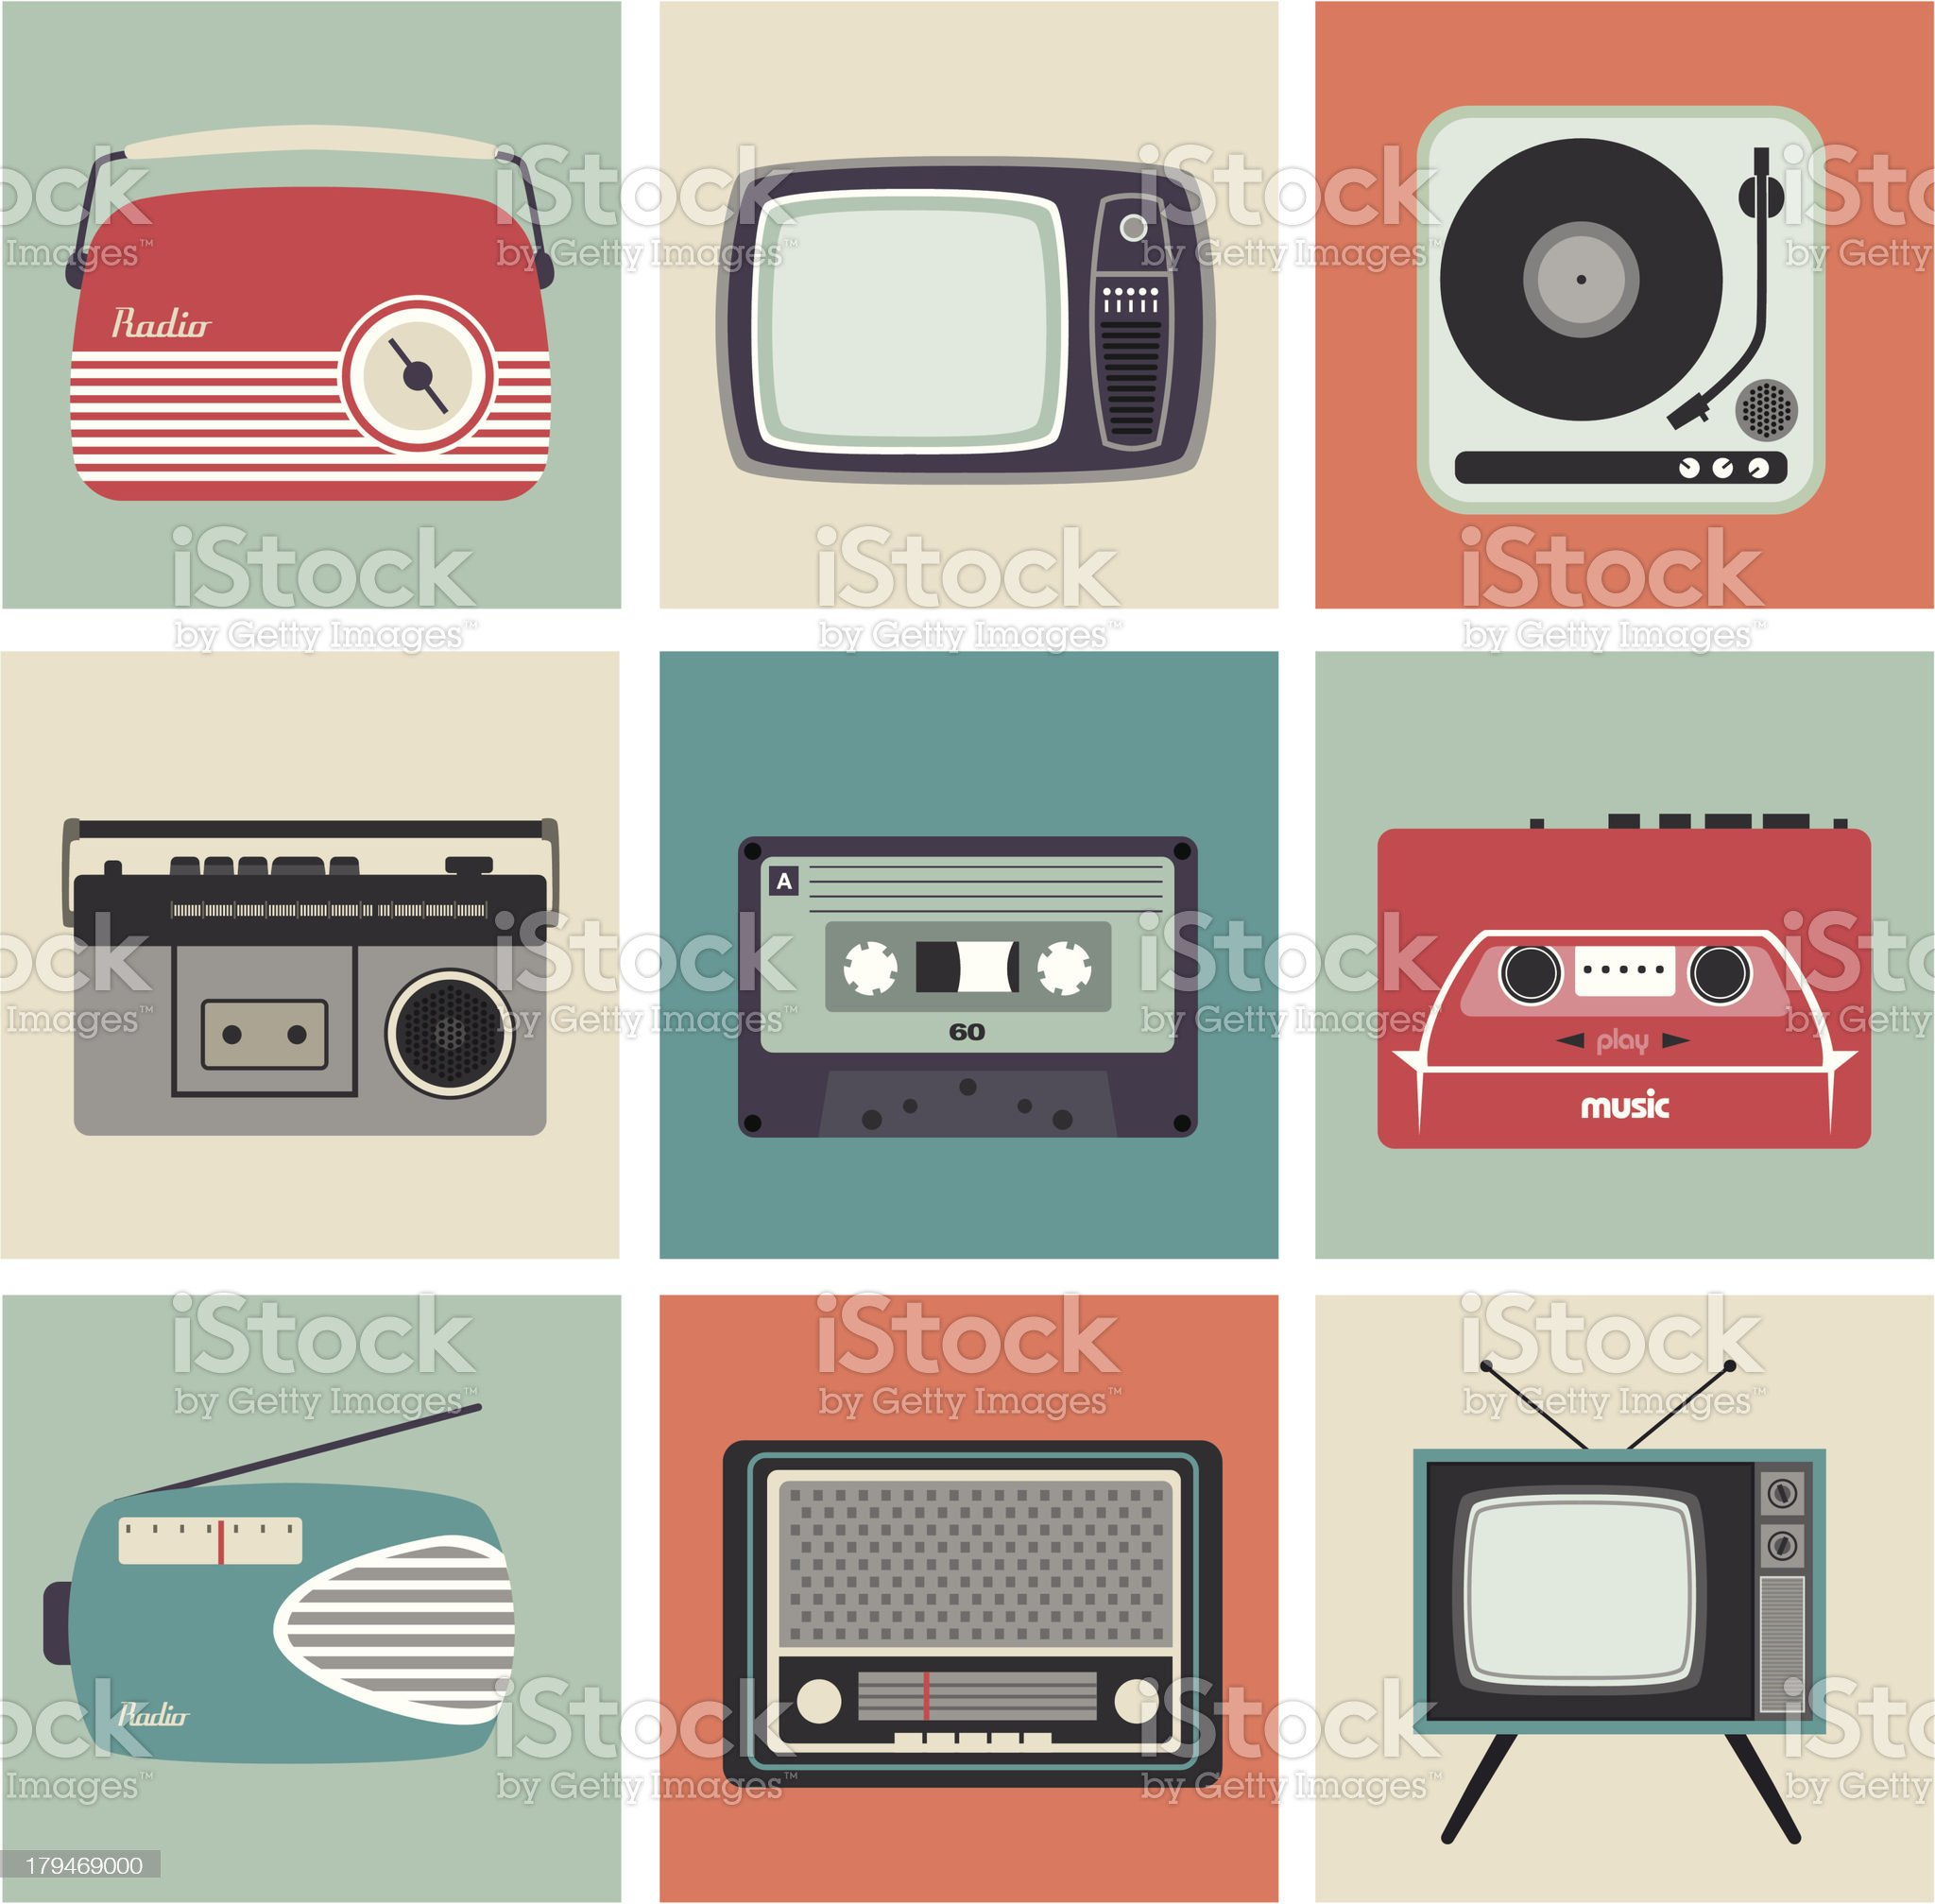 Retro Radio, TV and Other Electronic Equipment royalty-free stock vector art